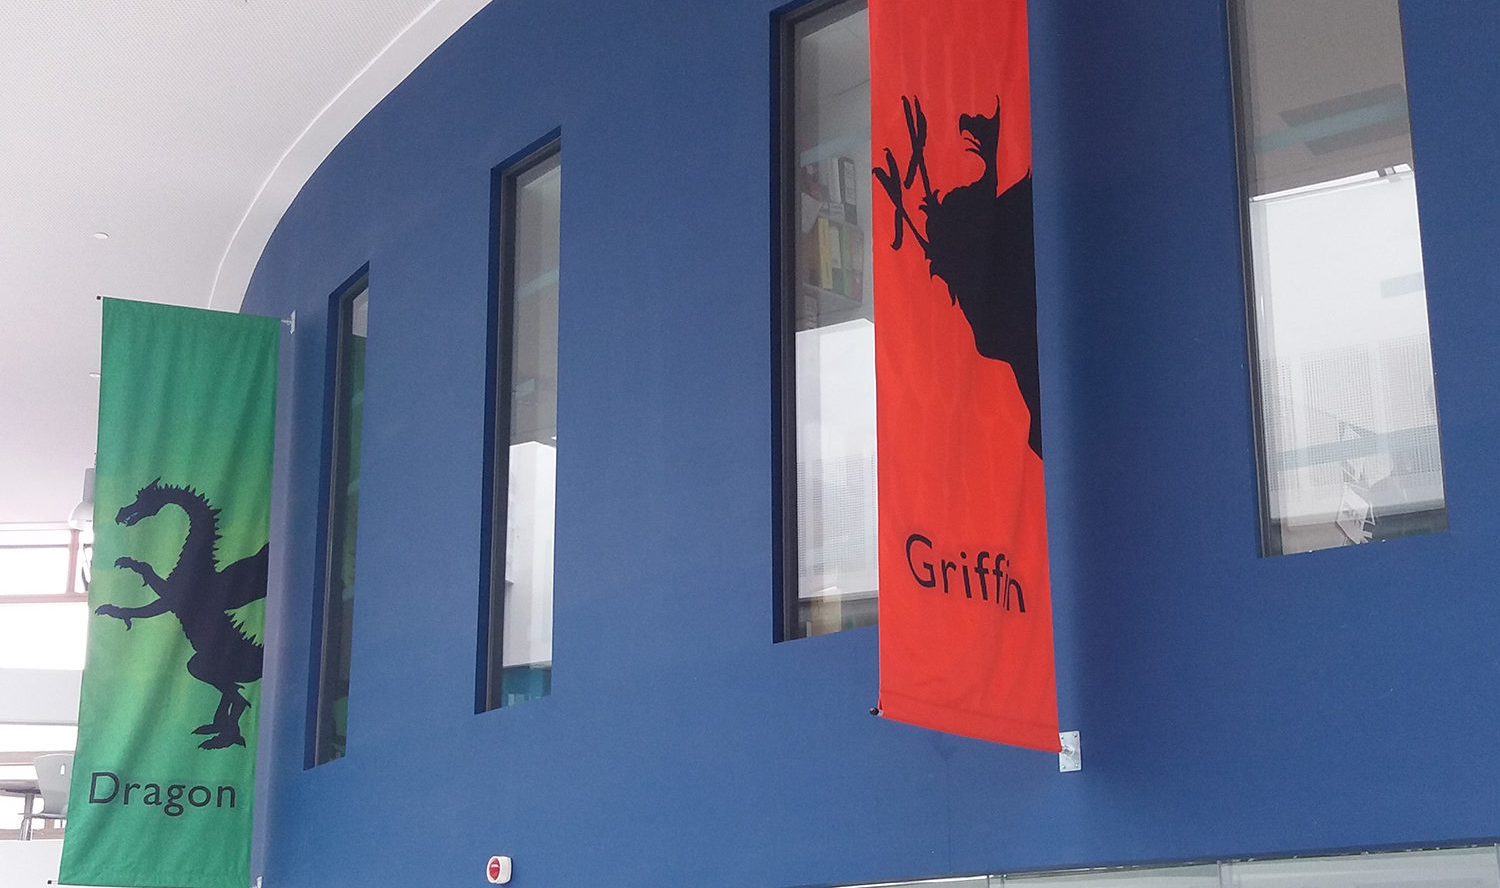 Striking New banners at Nailsea School – inspired by Harry Potter stories